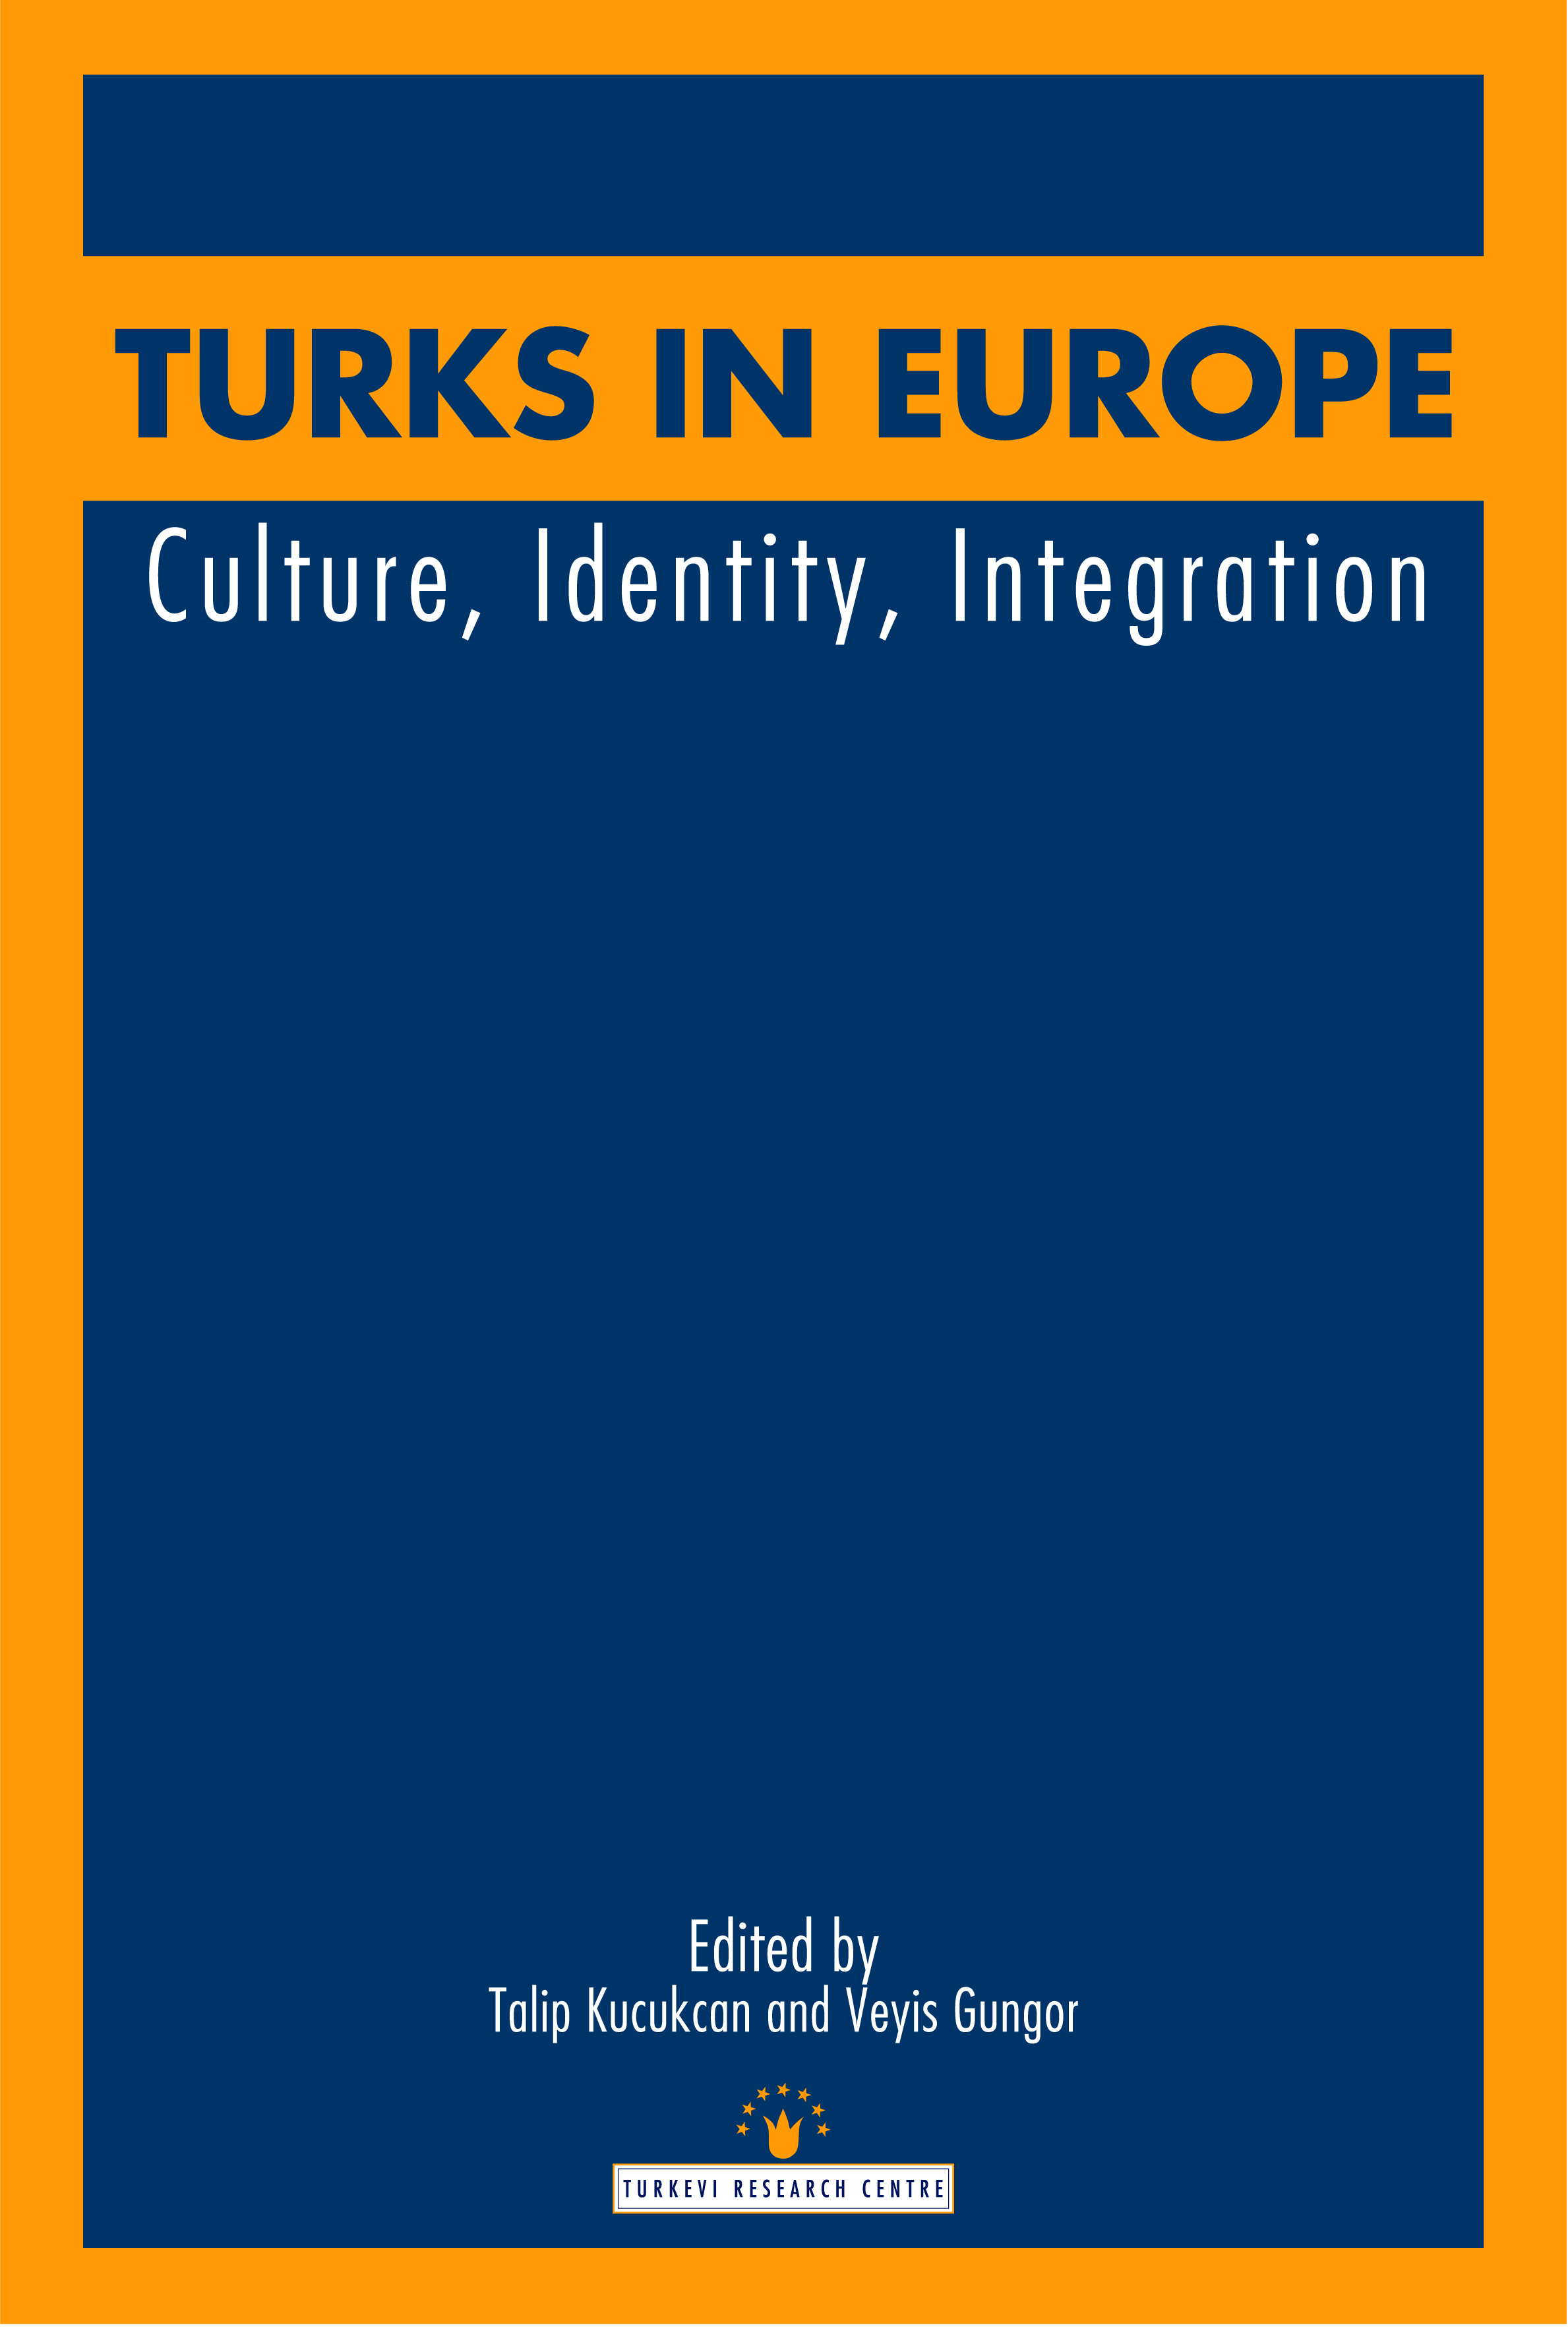 europeans essays on culture and identity Native americans and cultural assimilation essays 1934 words   8 pages native americans have had a long history of resistance to the social and cultural assimilation into white culture.